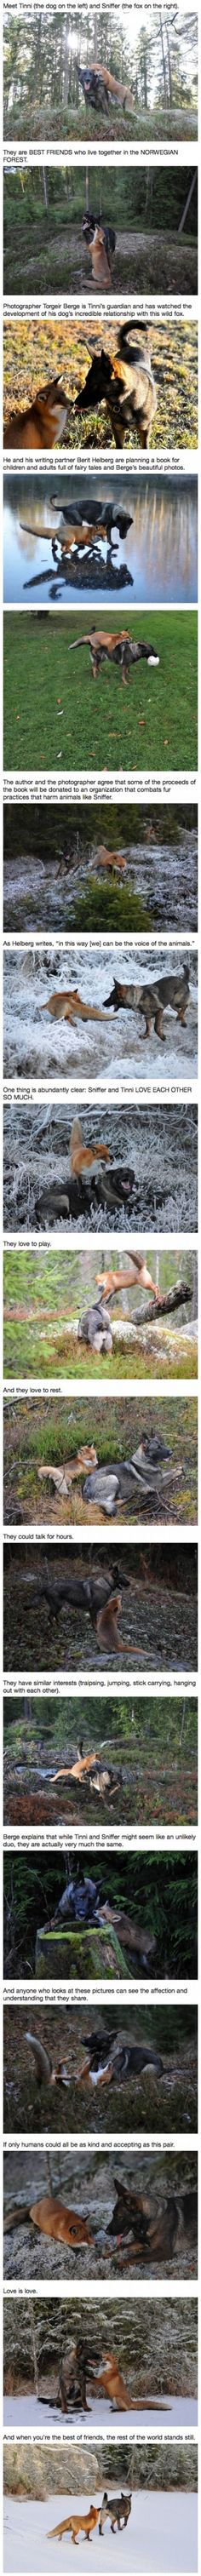 Real-Life Fox And The Hound Best Friends Will Melt Your Heart